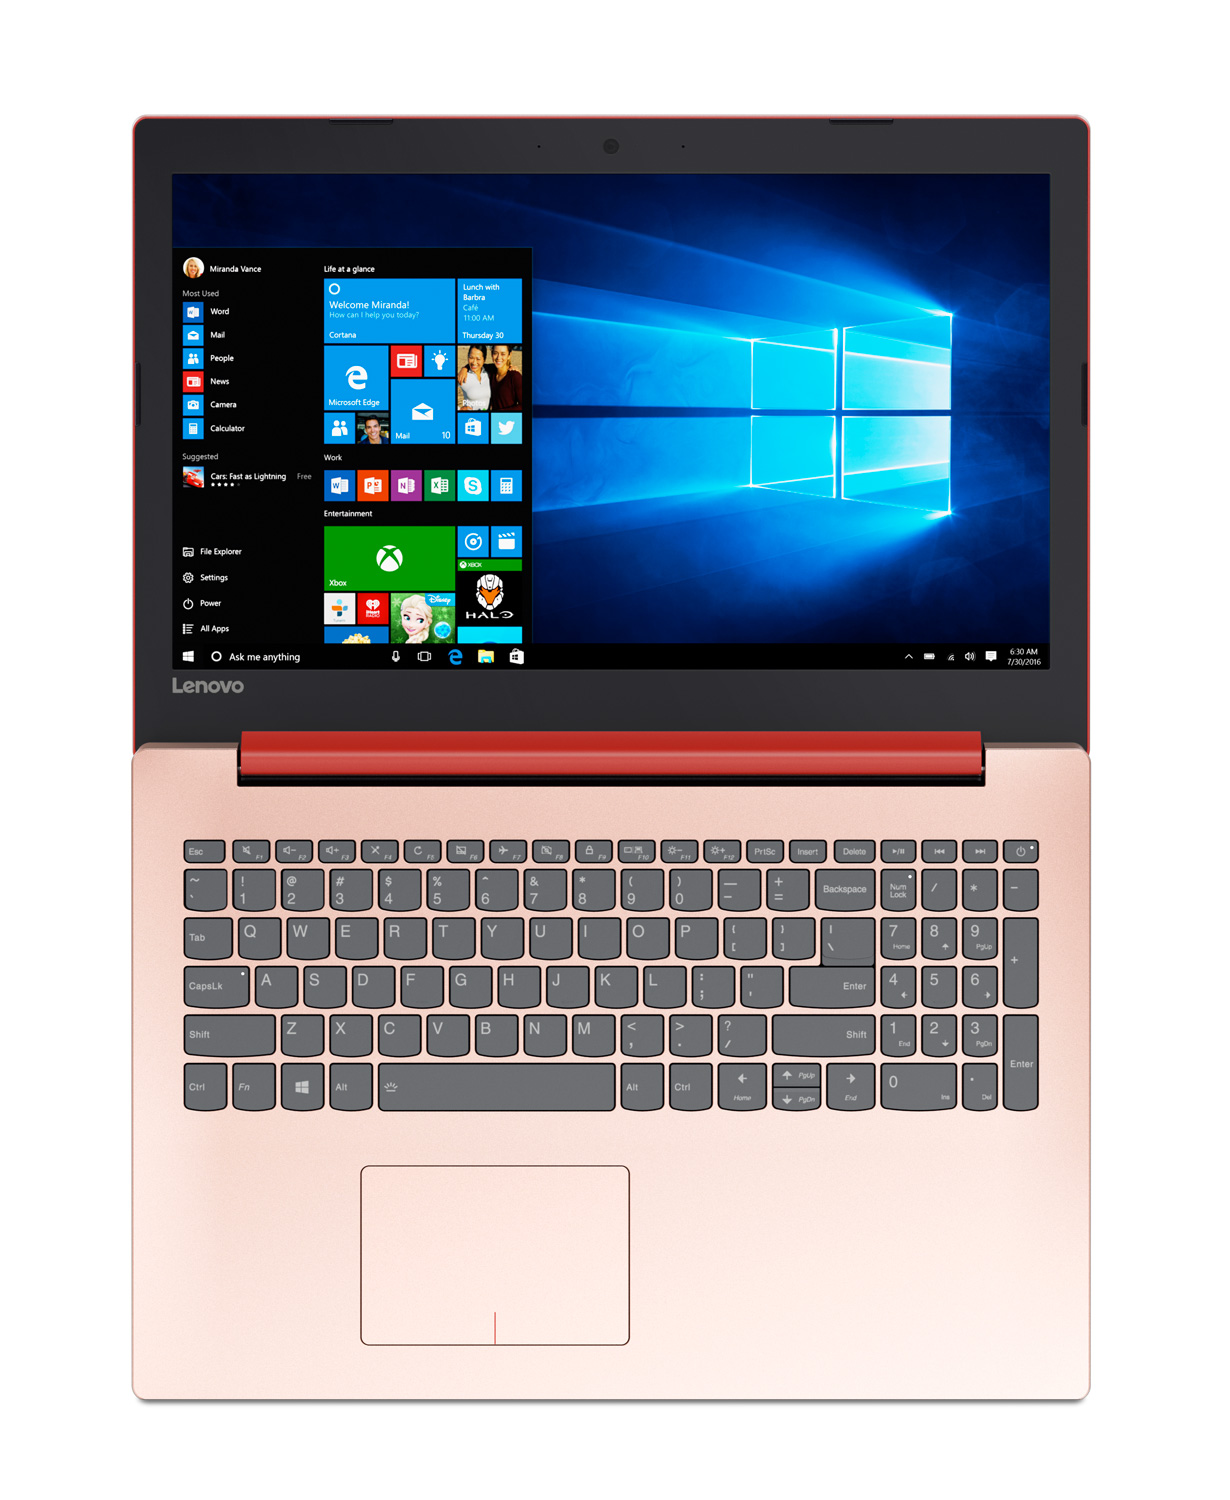 lenovo ideapad 320 15ast 80xv00jvfr achetez au meilleur prix. Black Bedroom Furniture Sets. Home Design Ideas